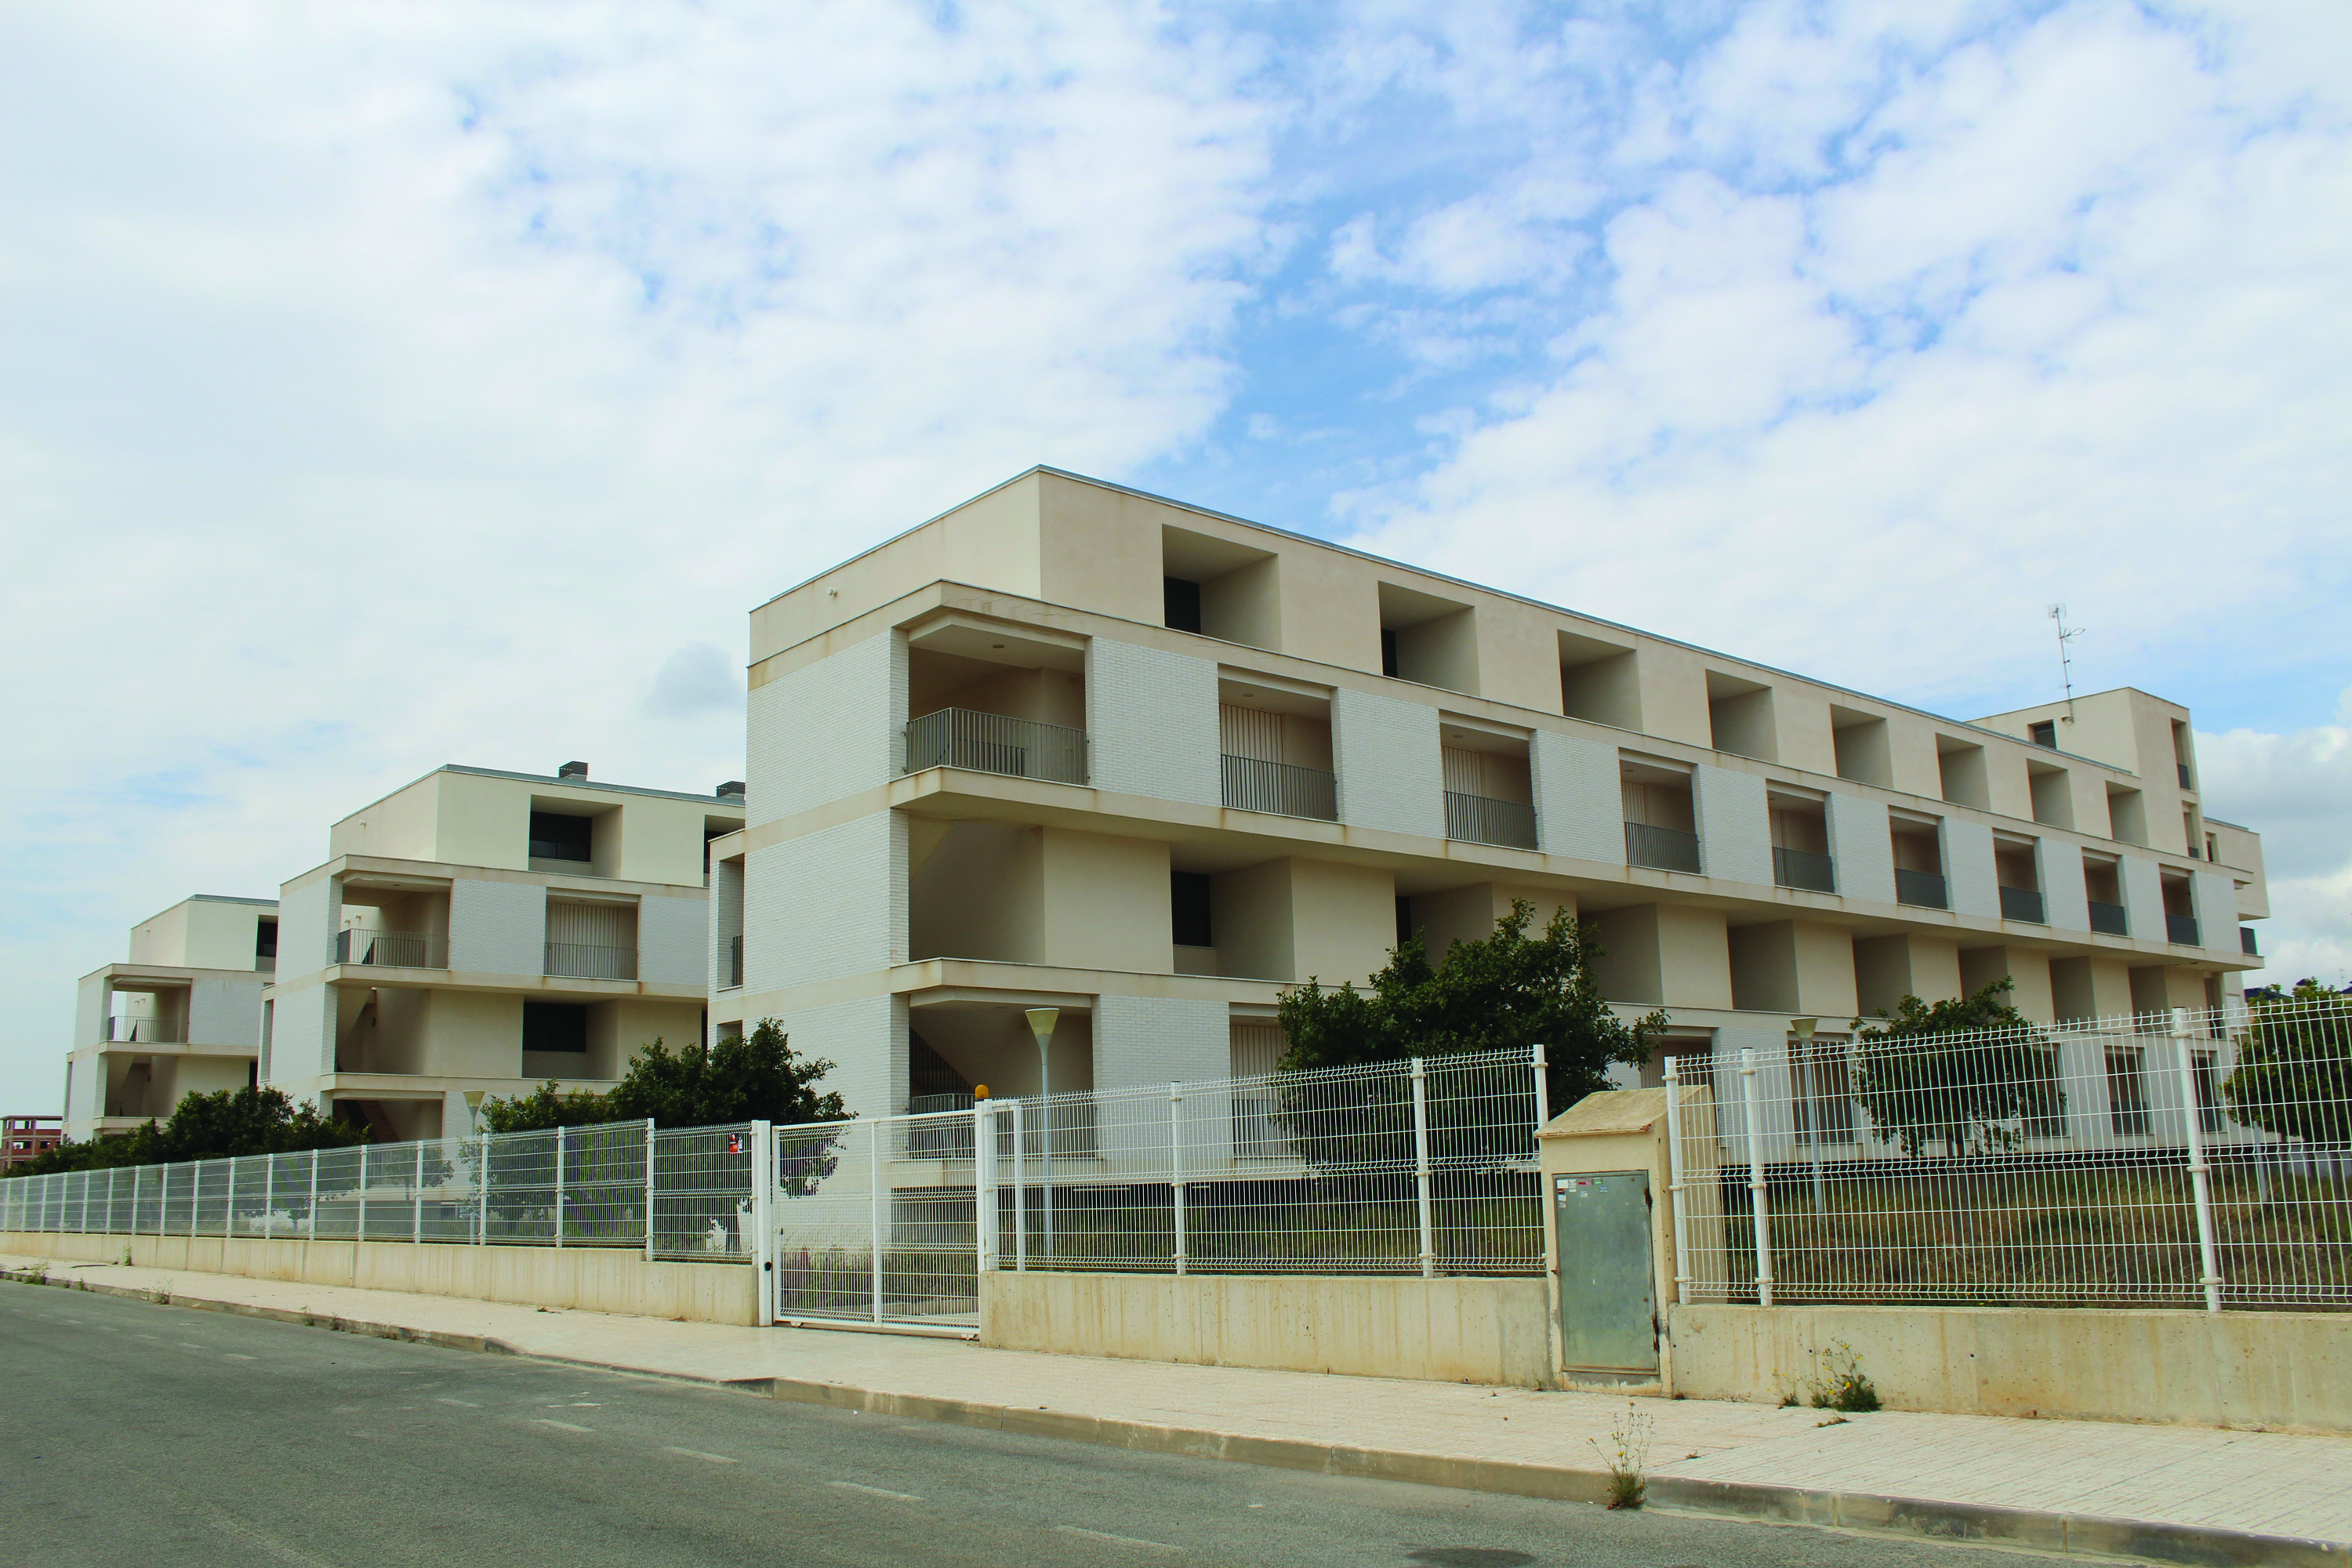 Low Cost Housing Finally Sold Off The Leader Newspaper # Muebles Lifetime Espana